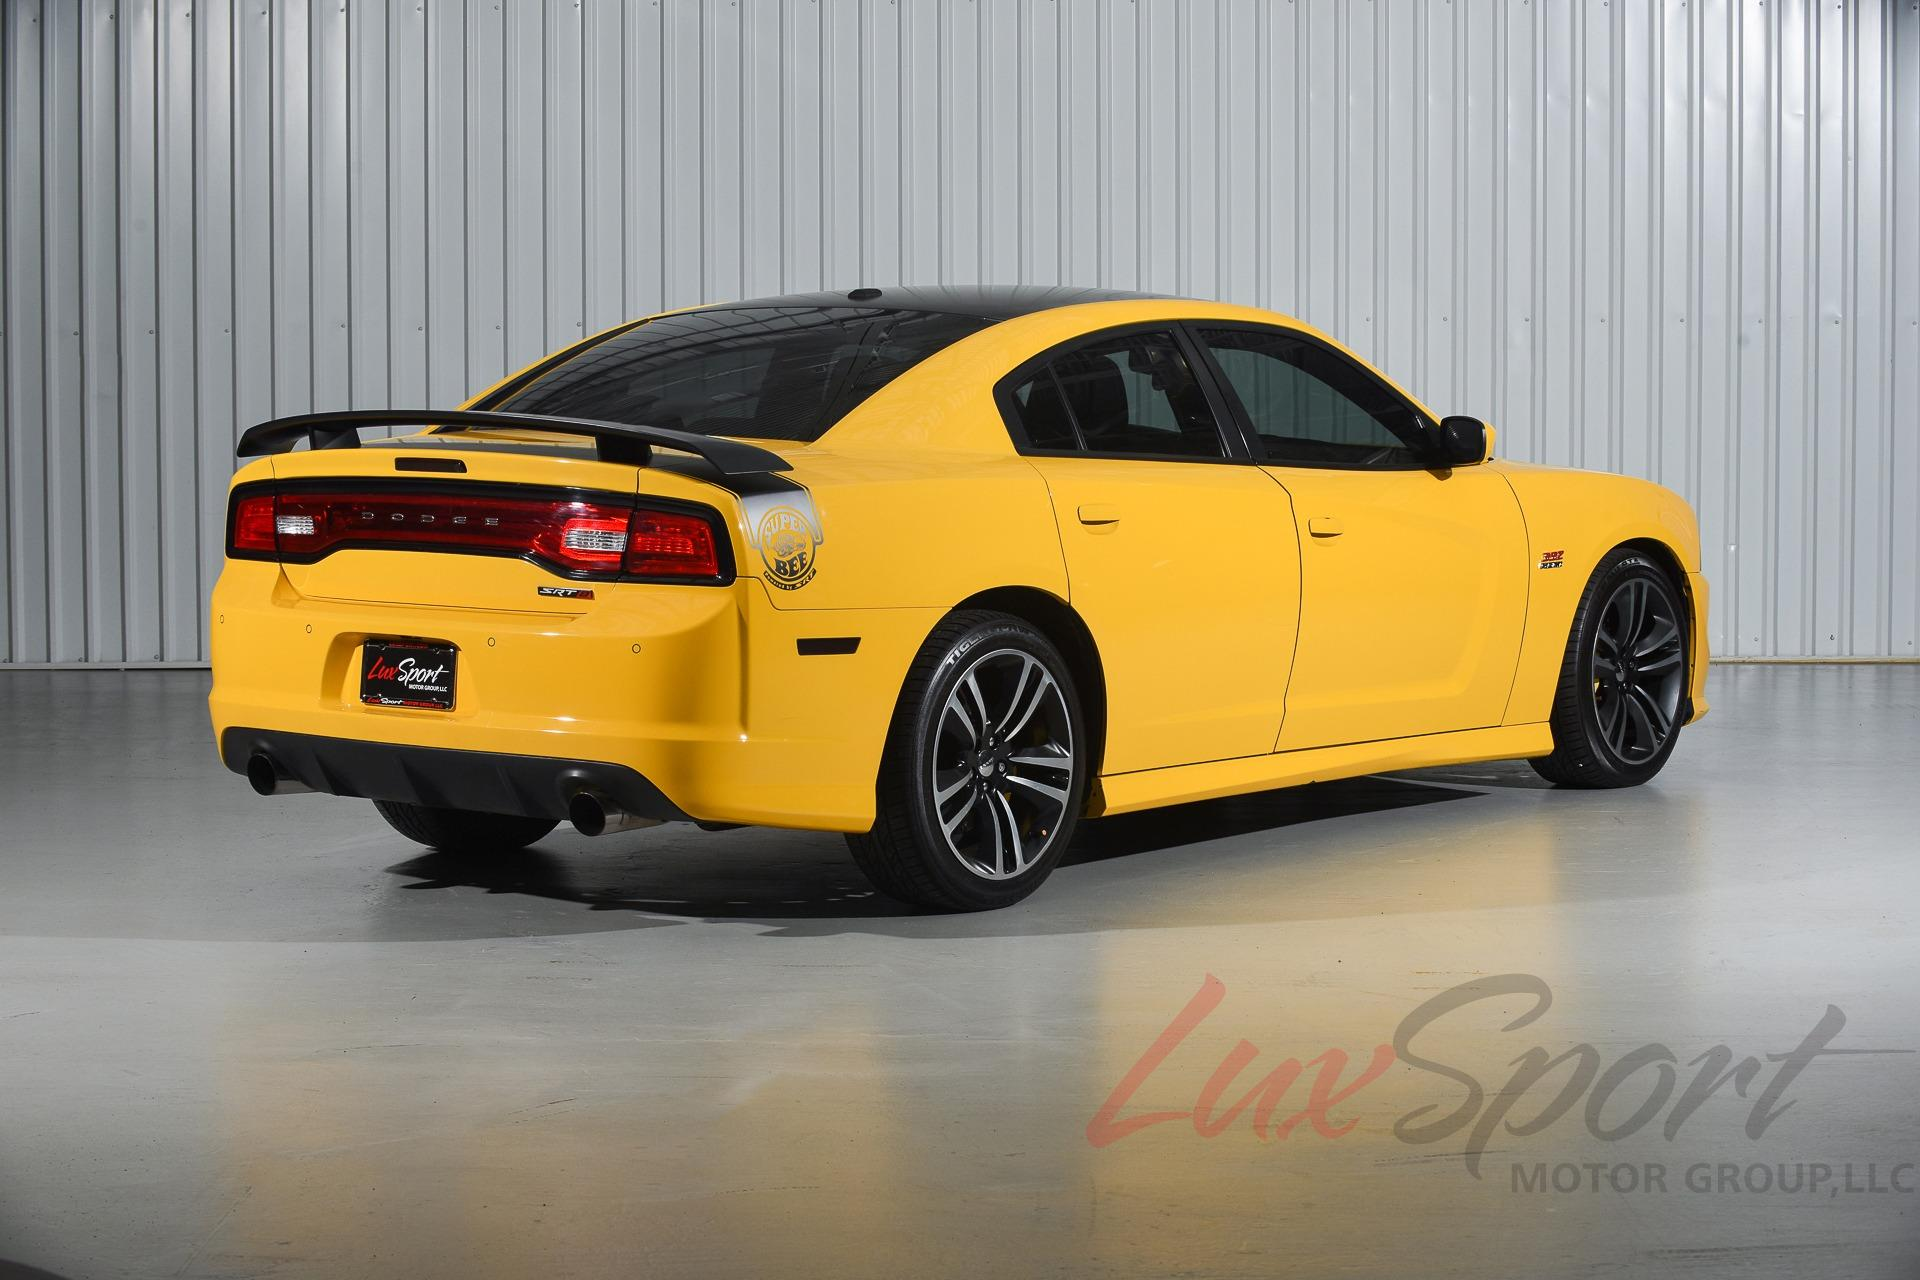 2012 dodge charger srt8 super bee stock 2012103 for sale near new hyde park ny ny dodge dealer. Black Bedroom Furniture Sets. Home Design Ideas